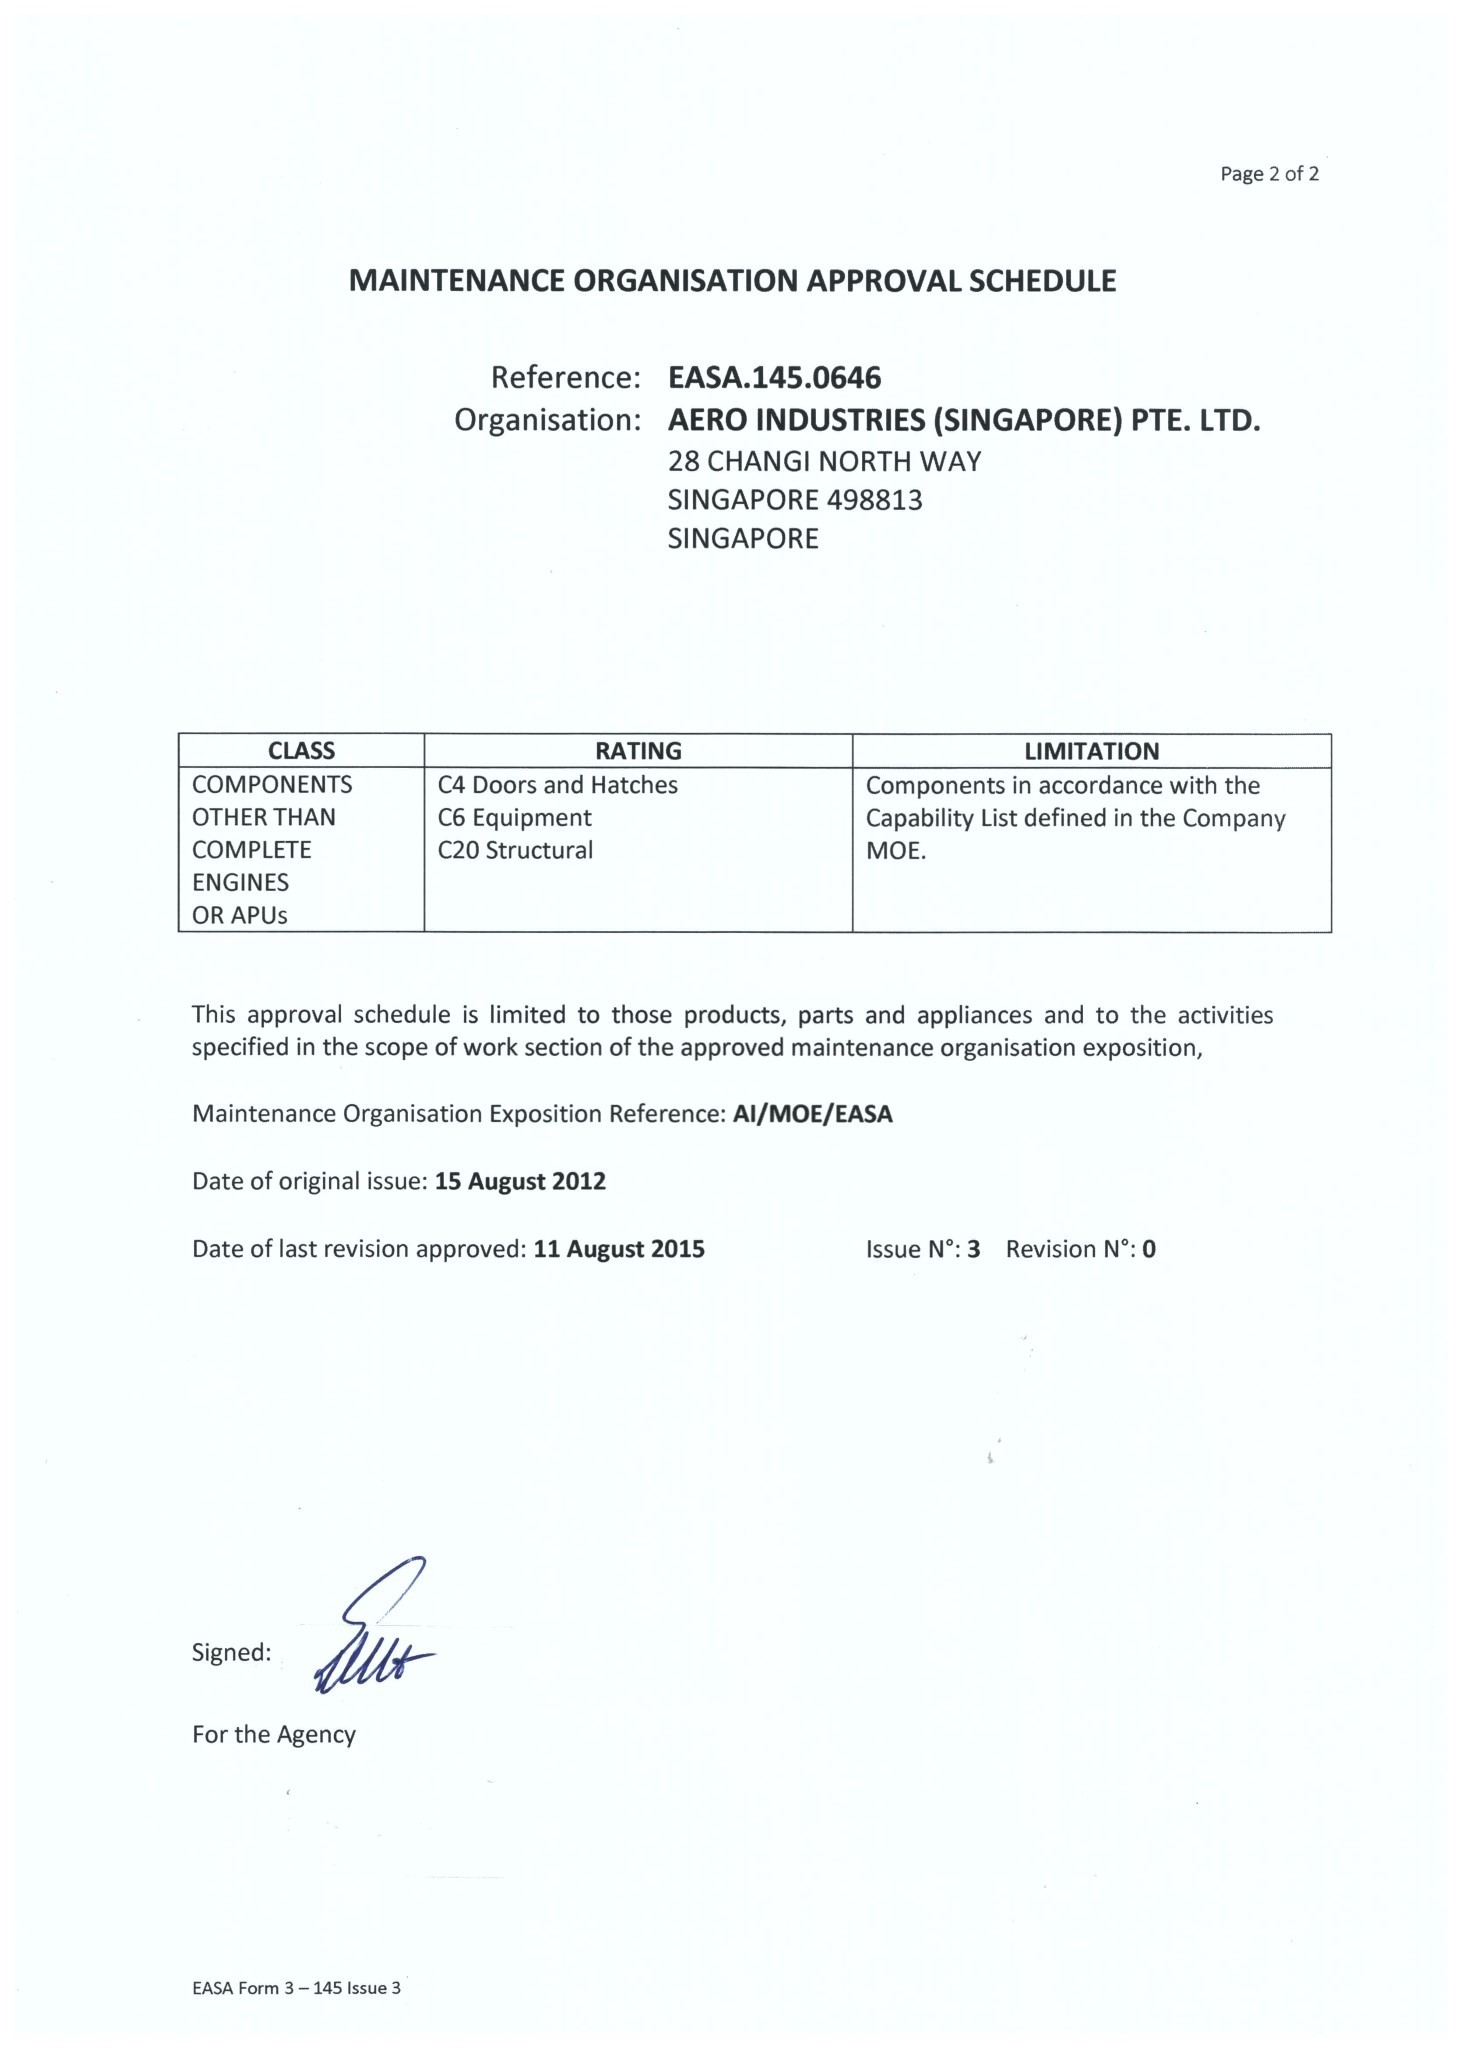 EASA 145 Approval Certificate -2